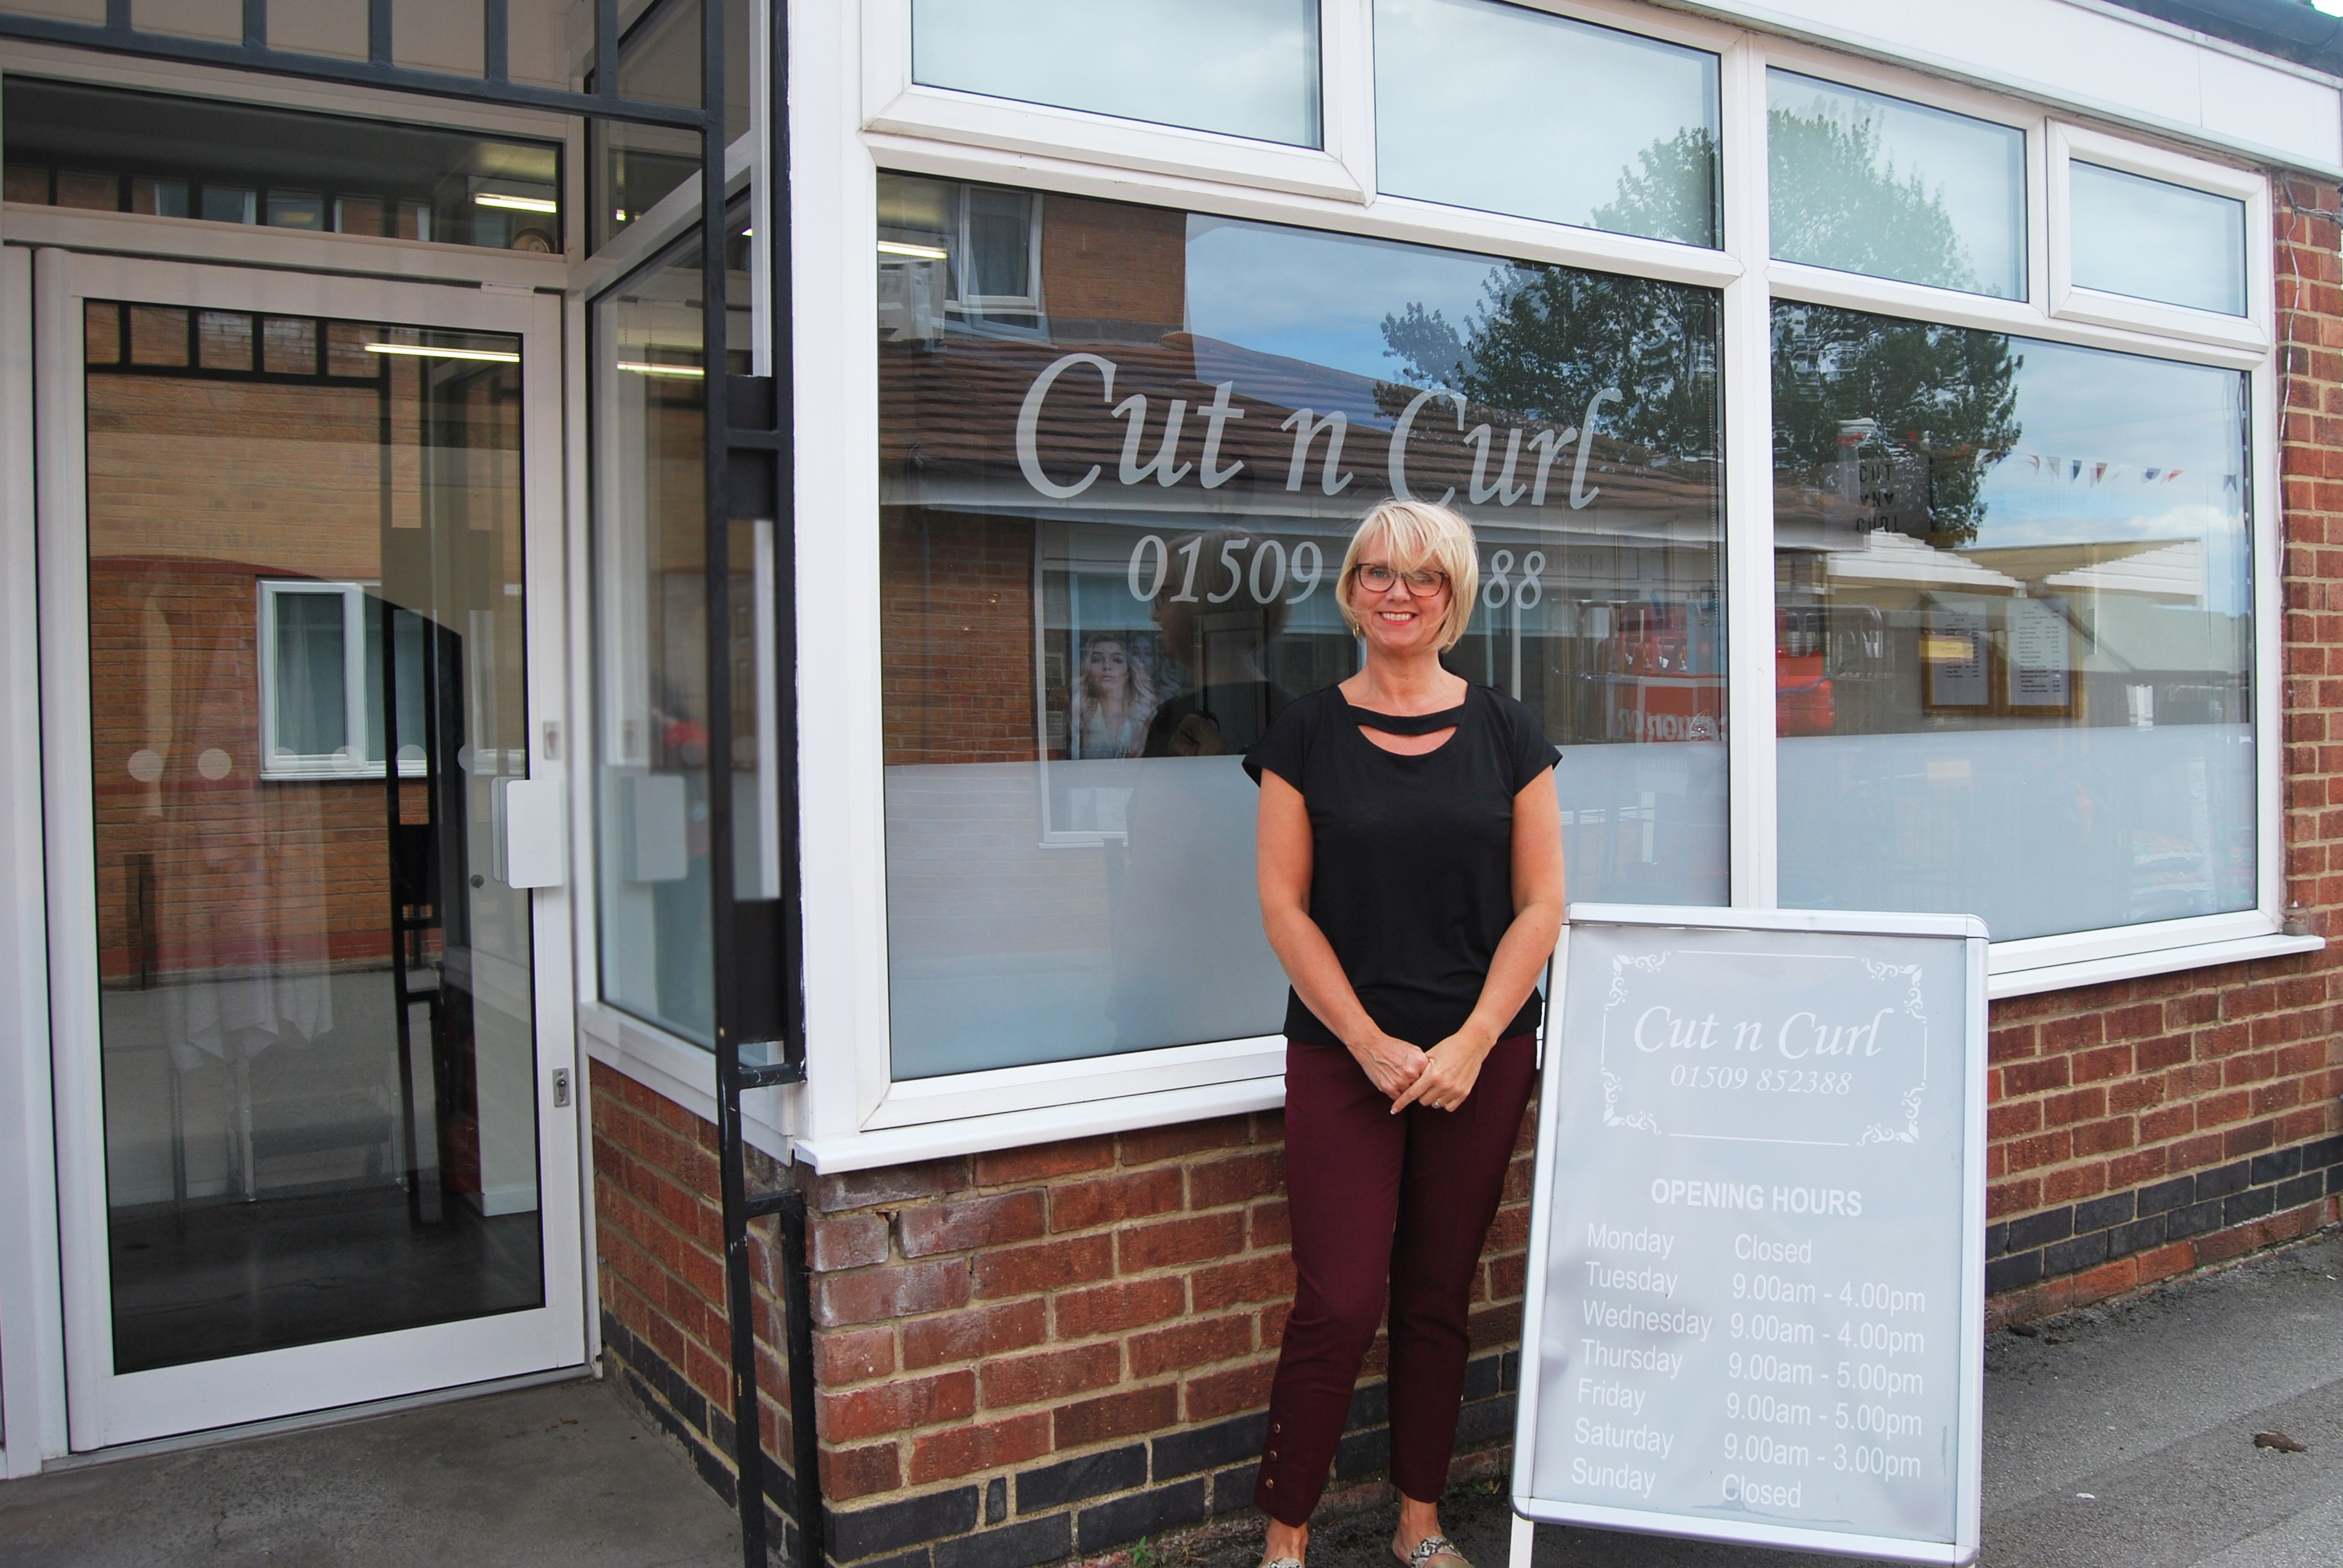 Cut N Curls Alison Cundell was pleased with the new installations at the front of the East Leake business.